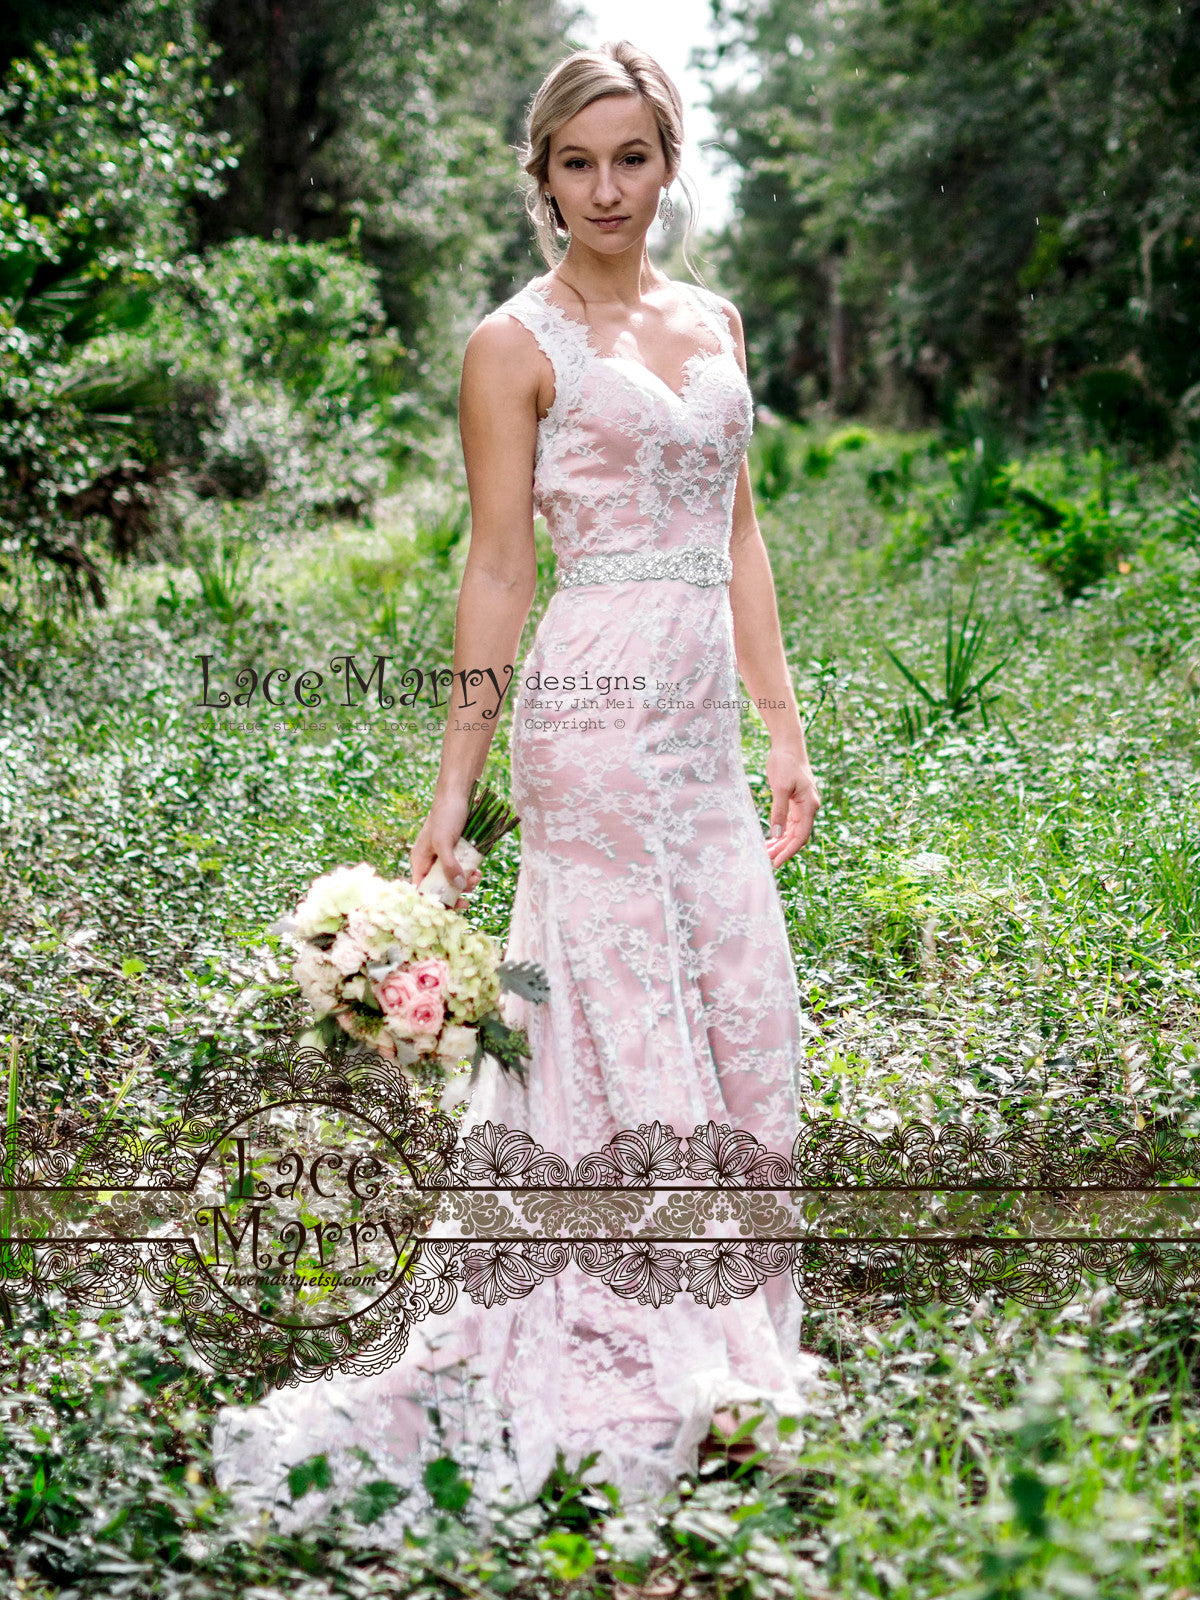 Blush Wedding Dress in Boho Style